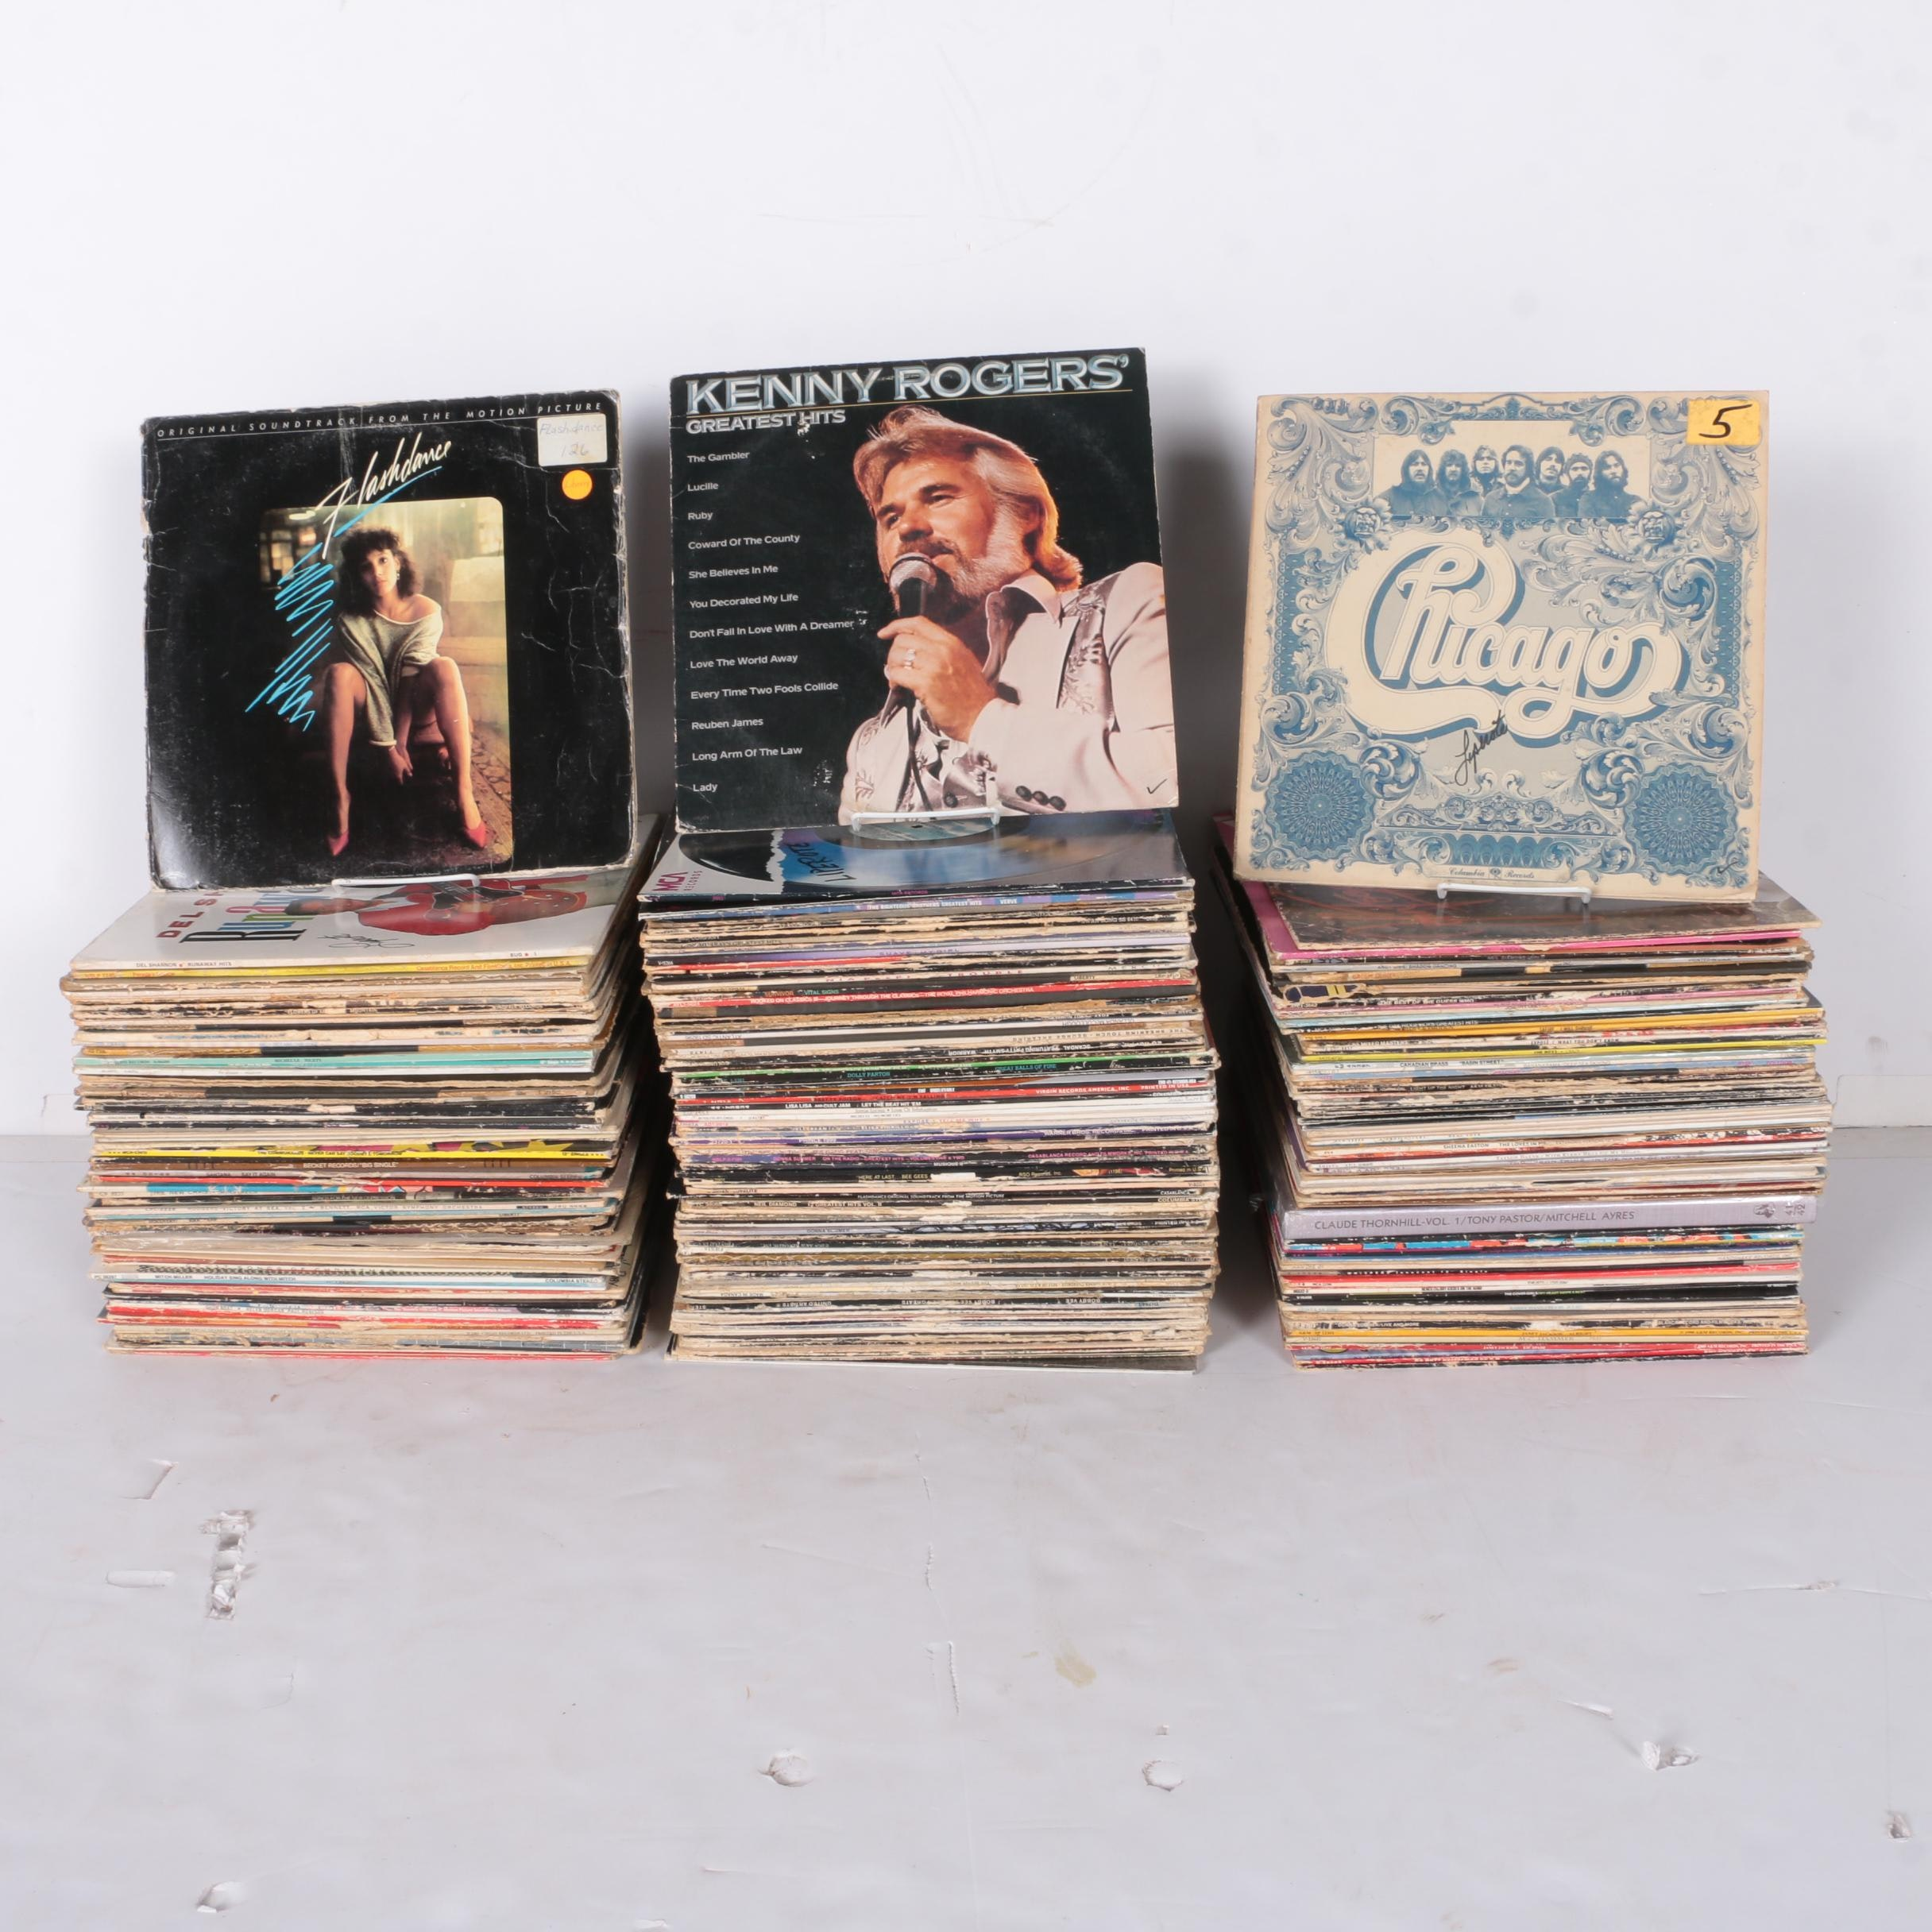 "Kenny Rogers, Chicago, Dolly Parton and Many Other 12"" 33 RPM Records"